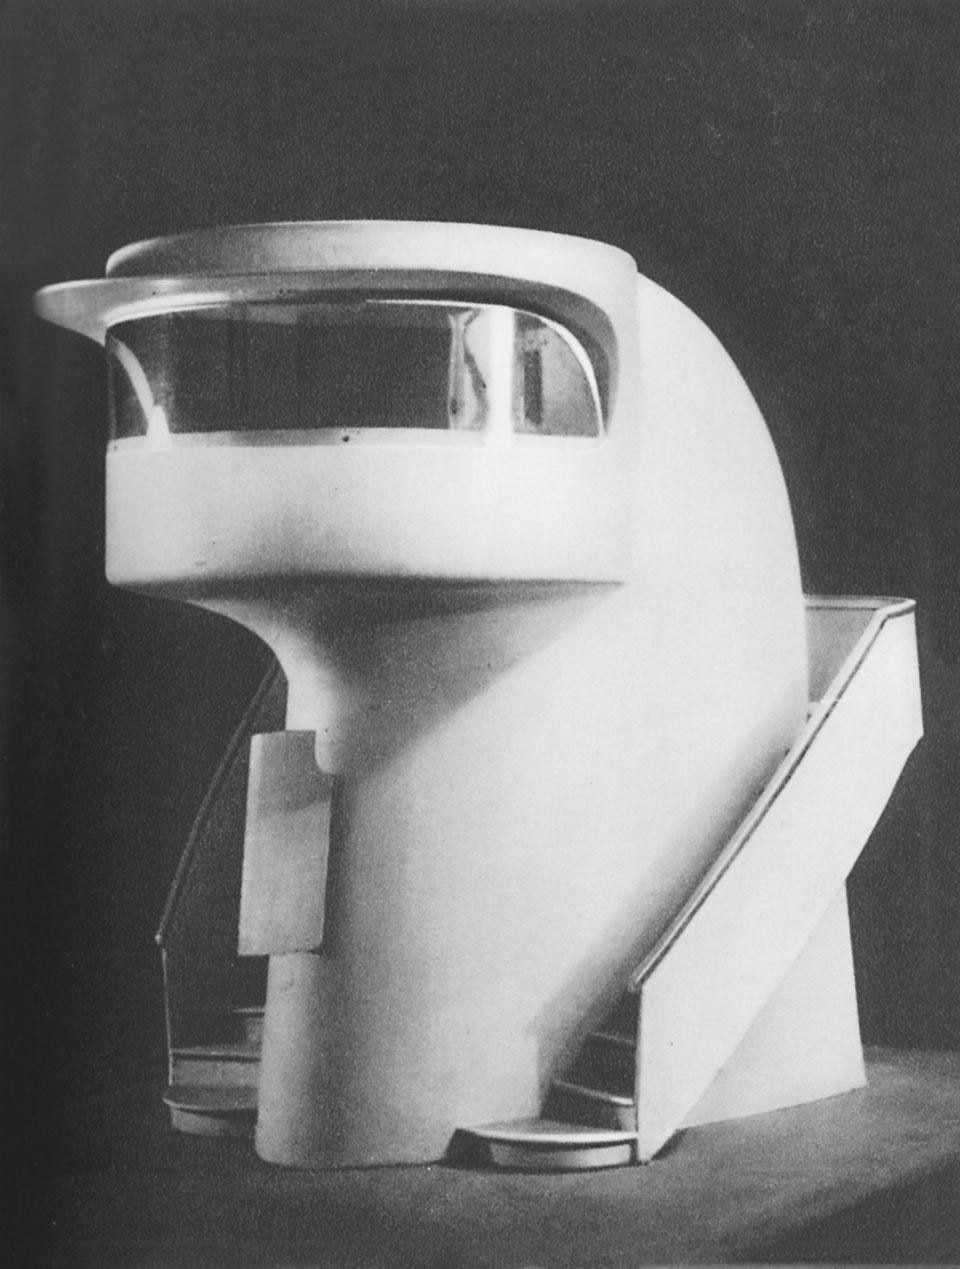 Model of a timekeeping